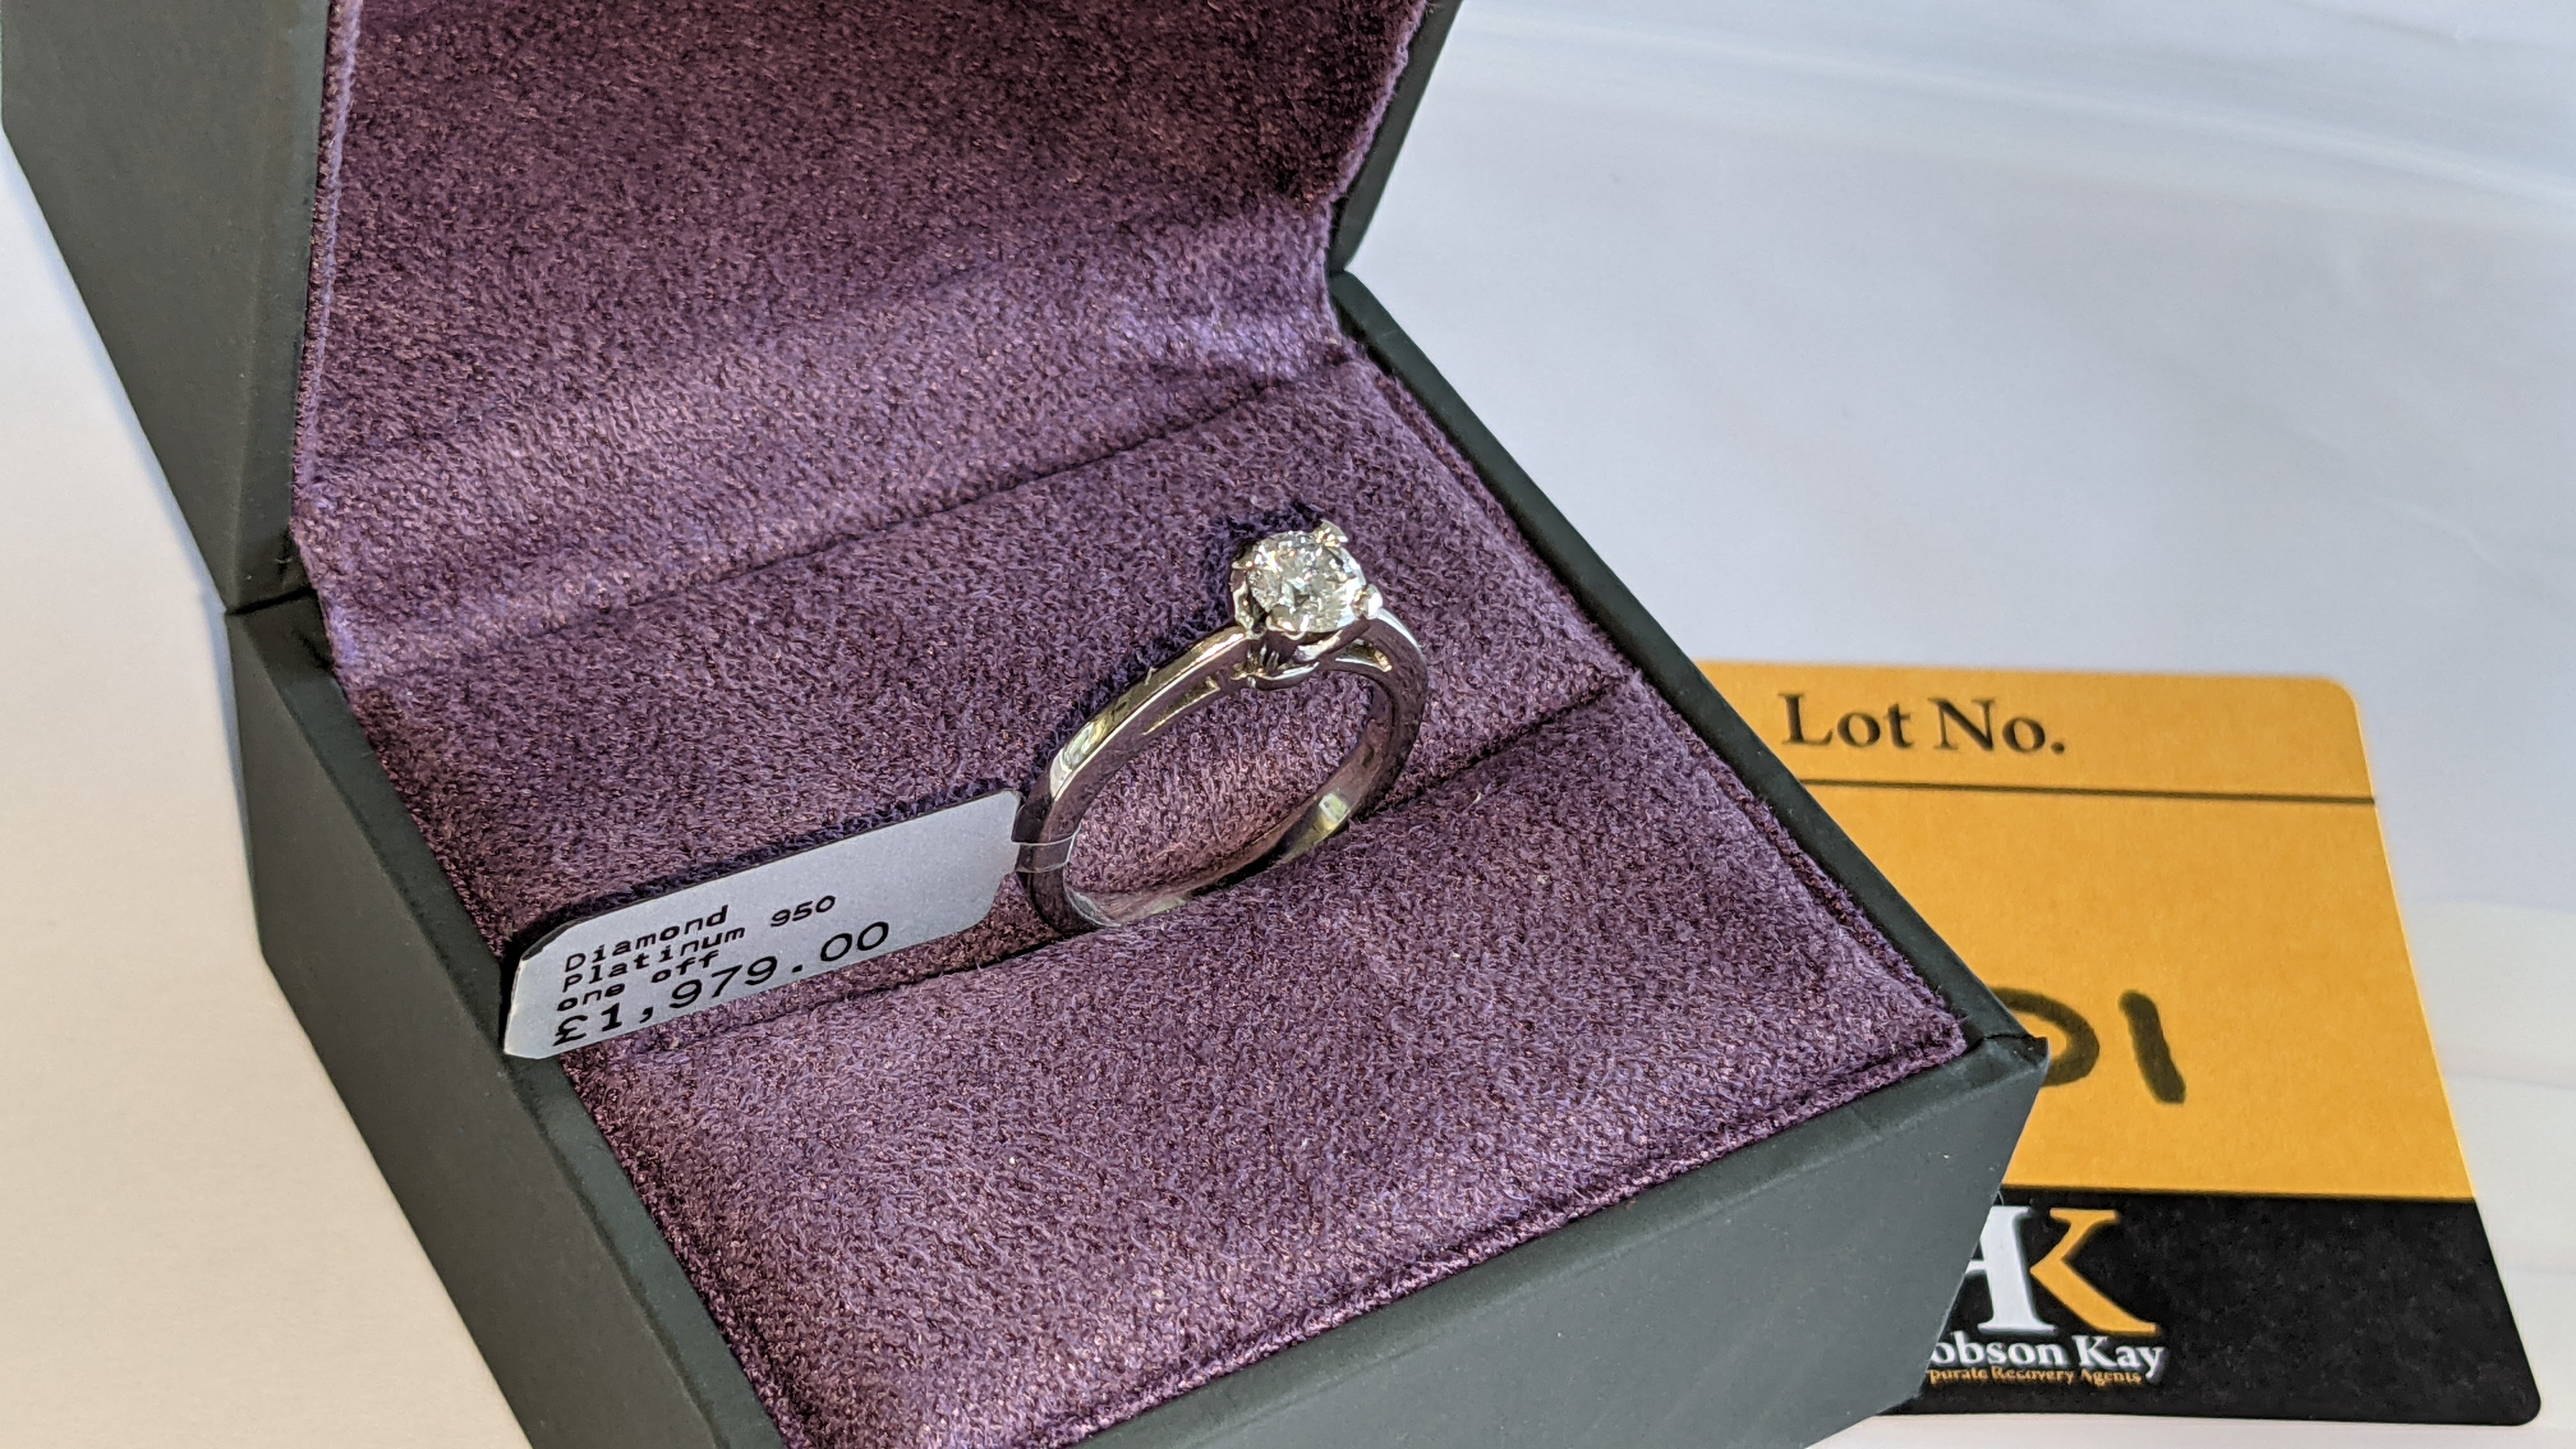 Platinum 950 ring with 0.50ct diamond. Includes diamond report/certification indicating the central - Image 5 of 25